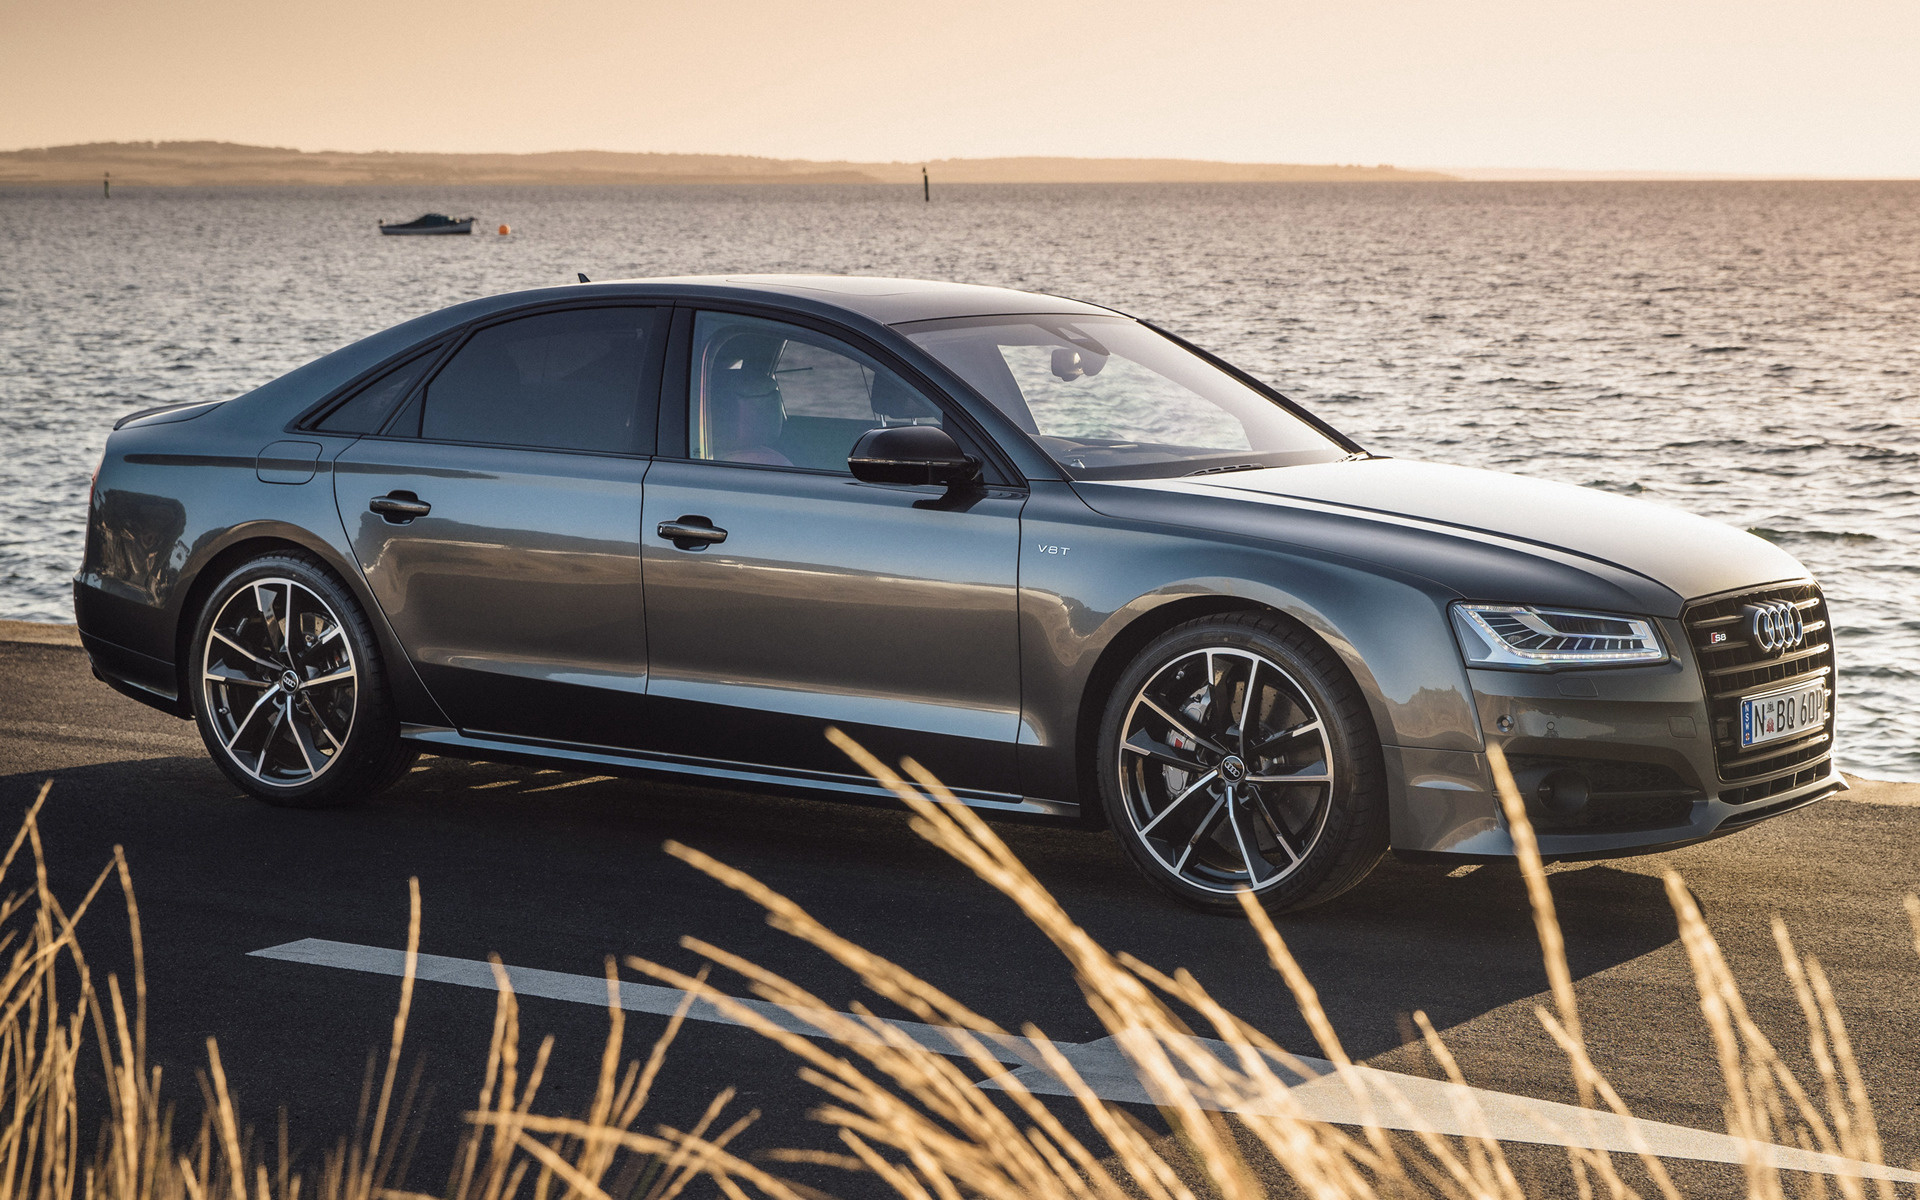 Audi S8 Wallpapers 39VAUW7 1920x1200 WallpapersExpertcom 1920x1200